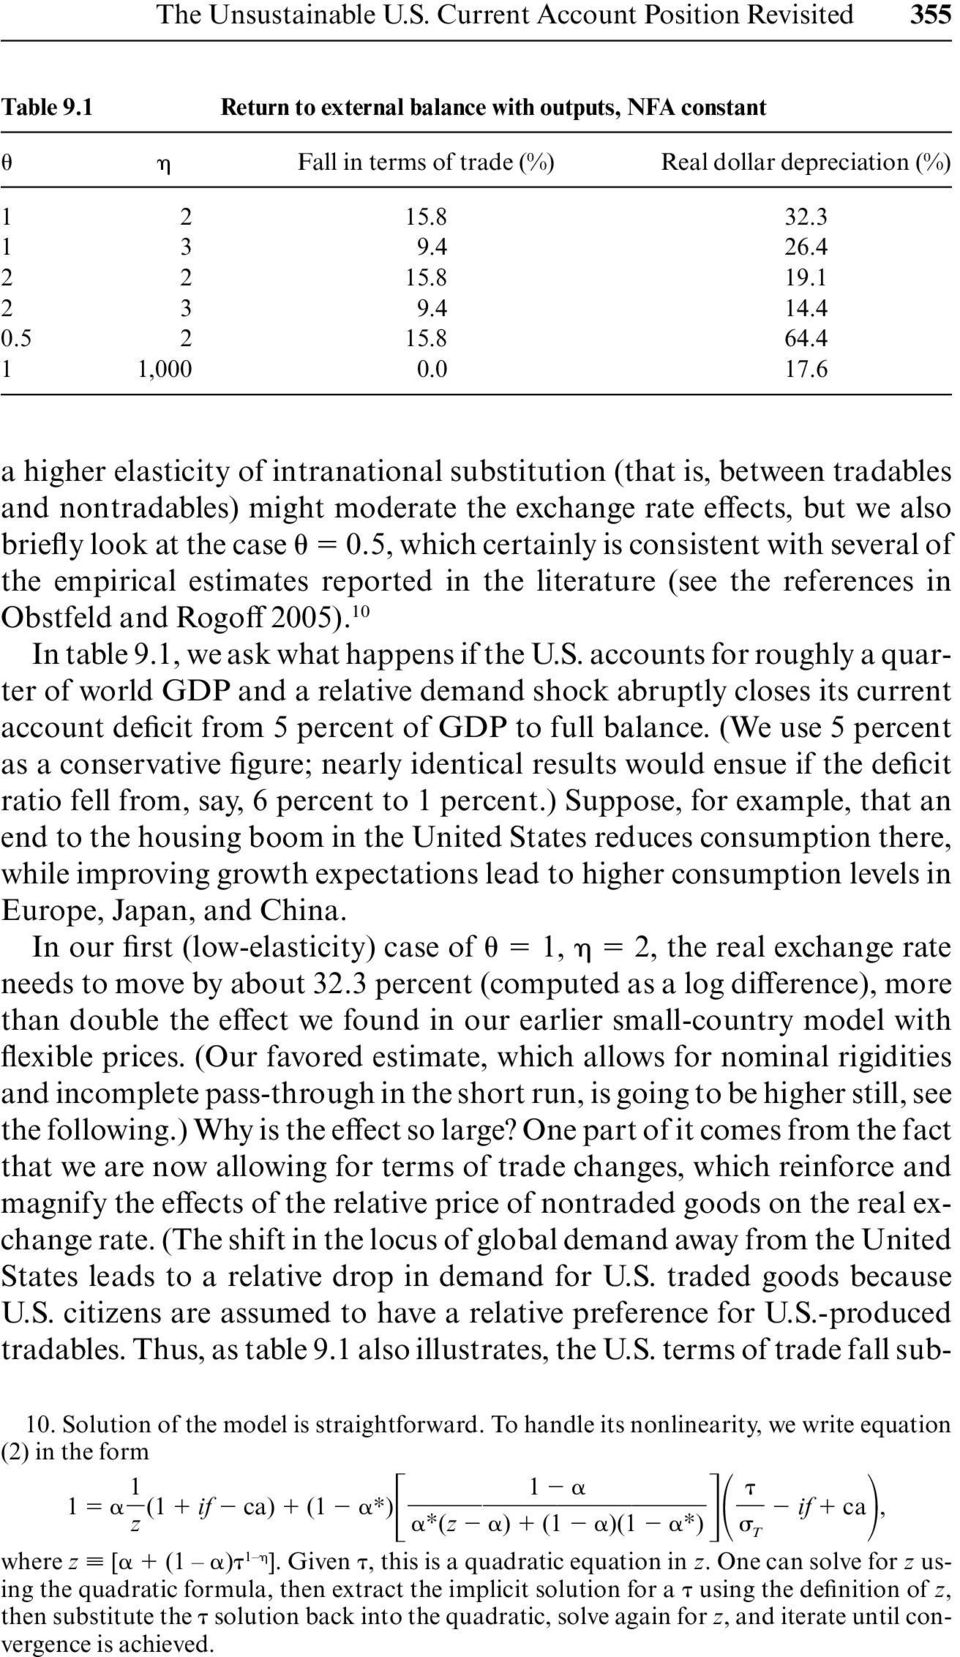 6 a higher elasticity of intranational substitution (that is, between tradables and nontradables) might moderate the exchange rate effects, but we also briefly look at the case 0.